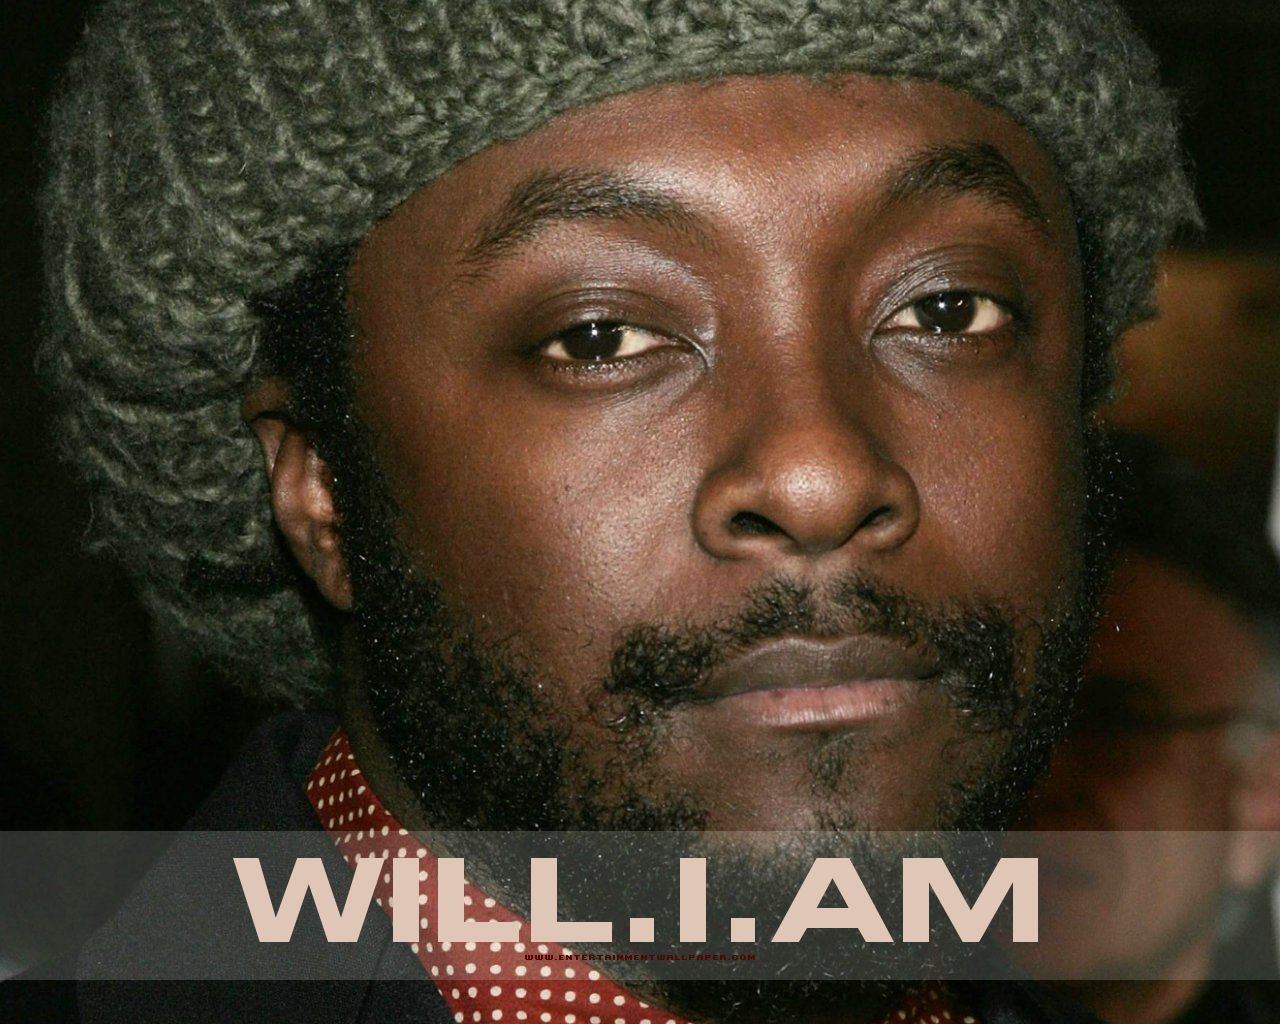 will i am on